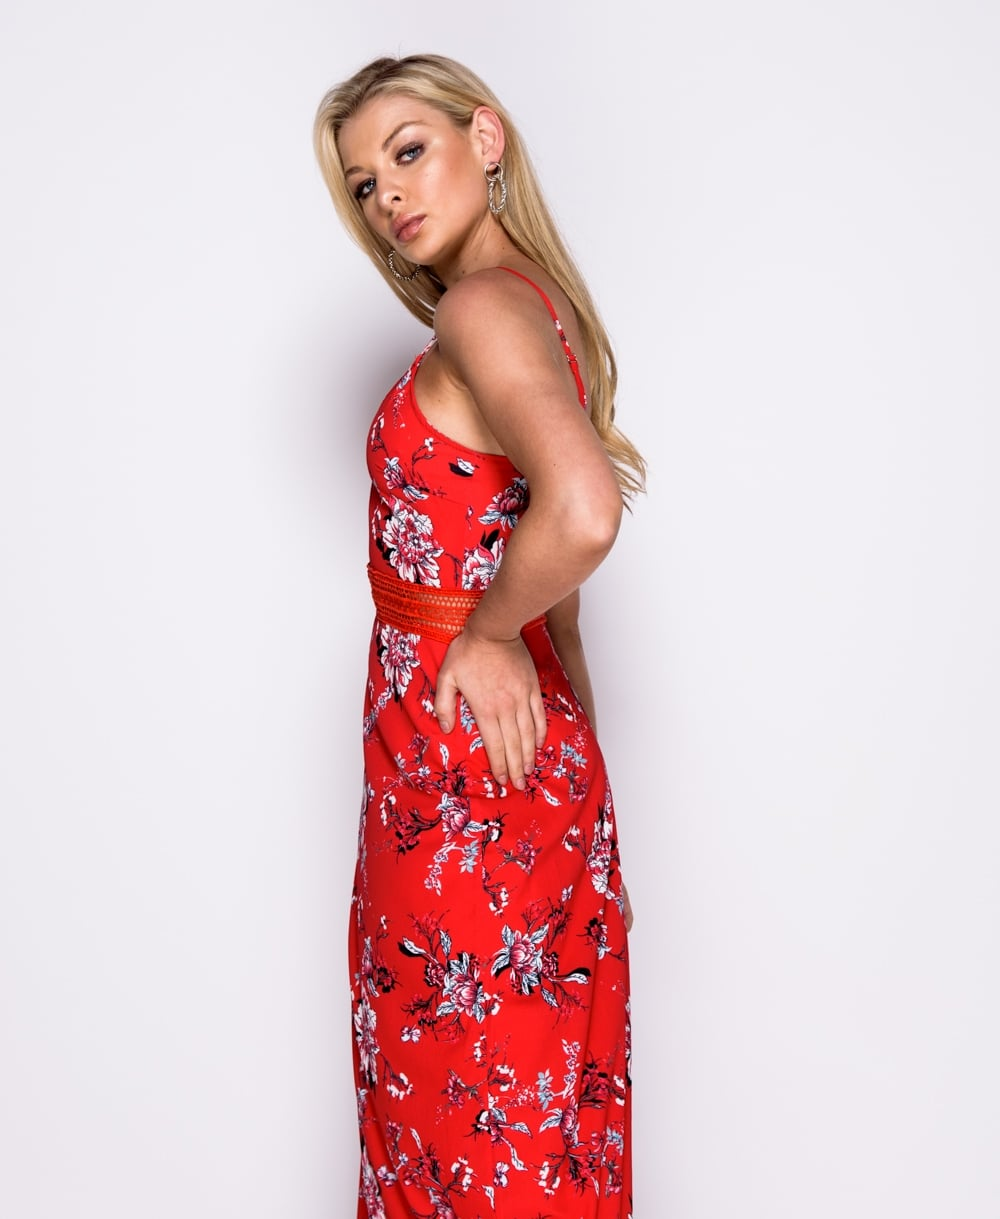 b88e90908 Red Floral print lace trim maxi dress long dress Online shopping mauritius